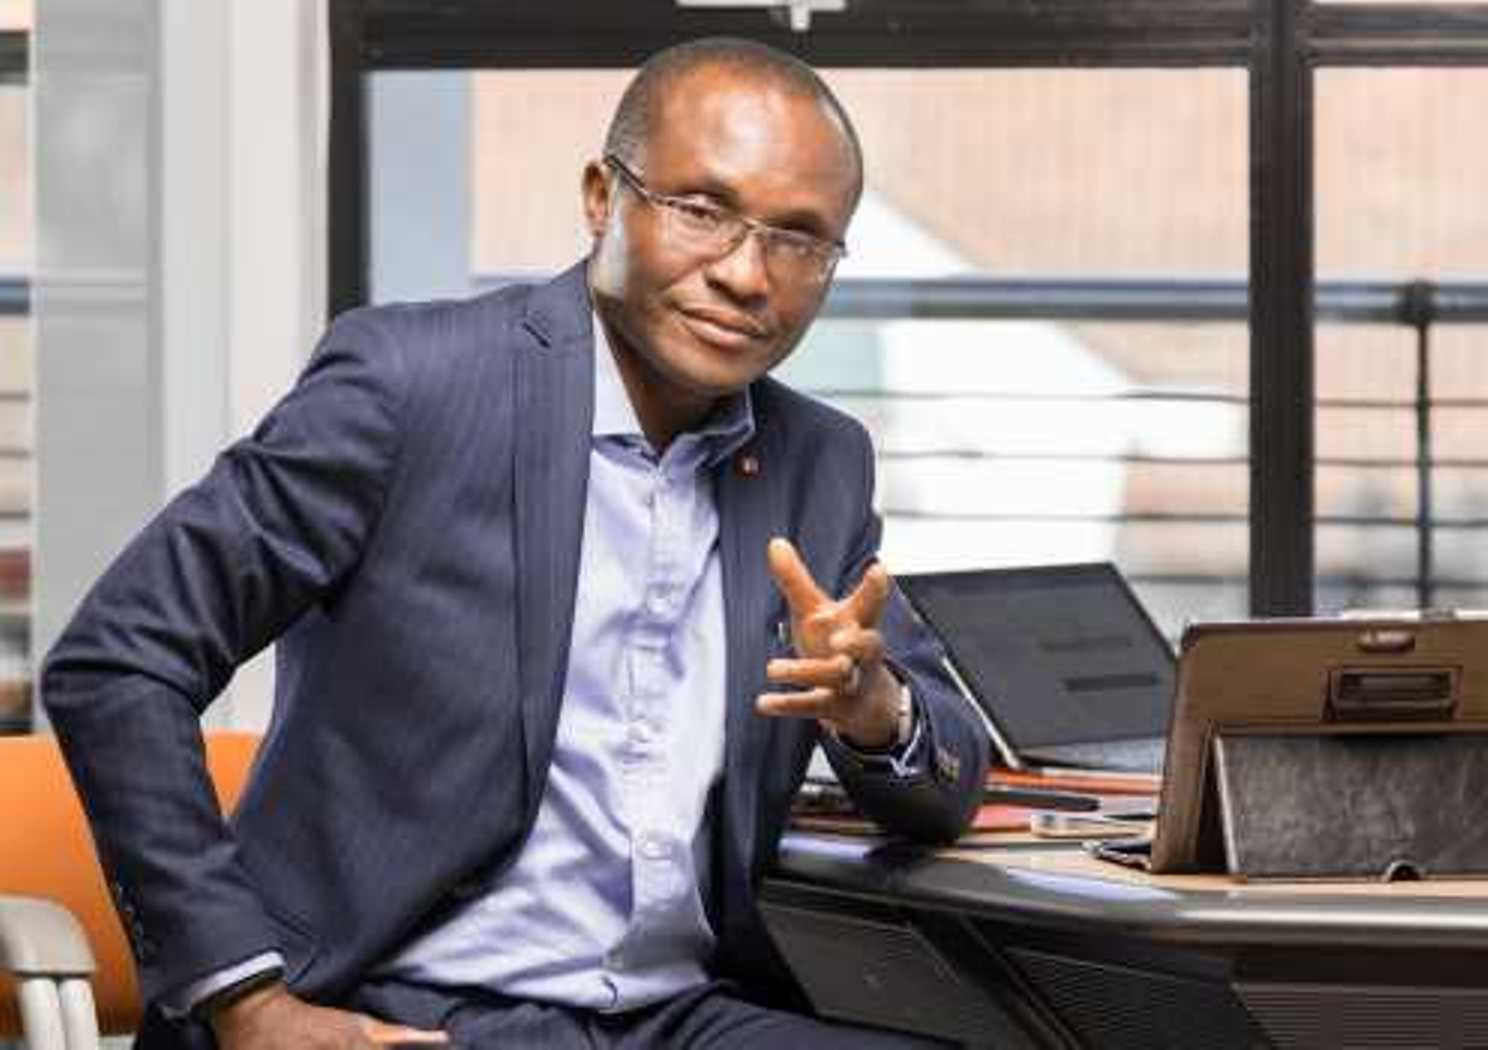 Crisis in Cellulant Nigeria Limited as co-founder resigns, over 35 staff sacked